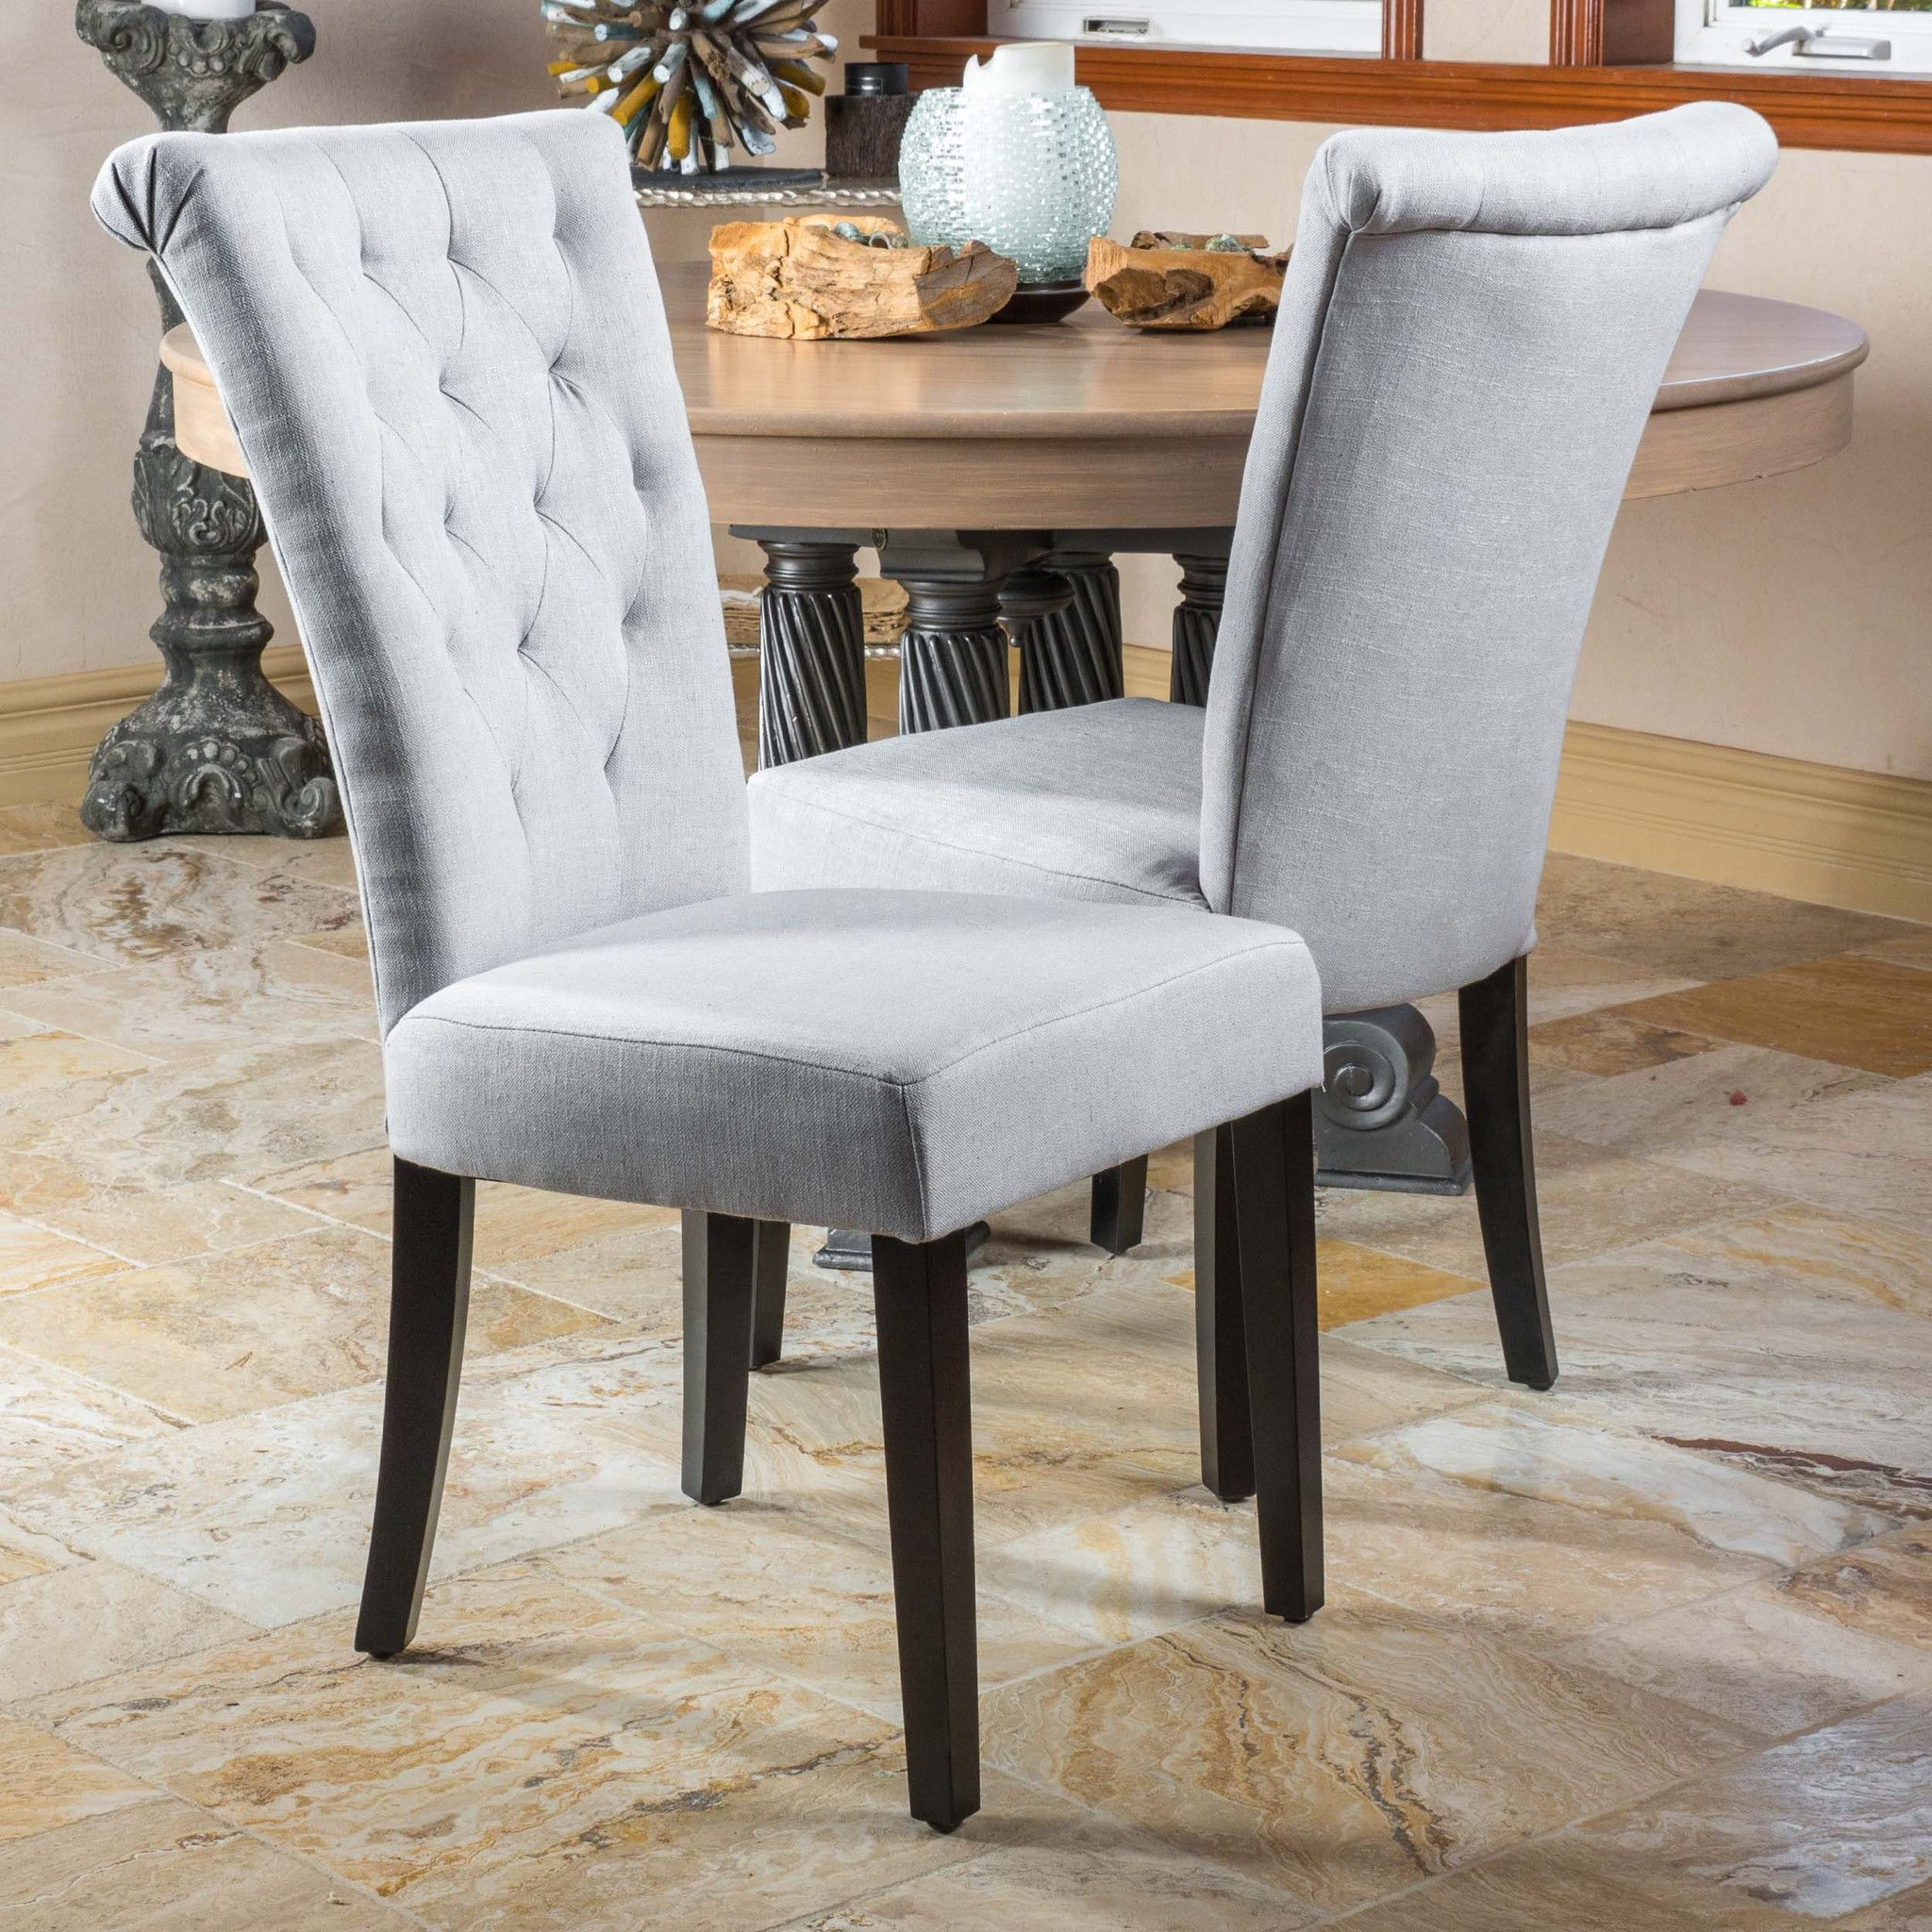 Paulina Fabric Dining Chairs Set Of 2 Tufted Dining Chairs